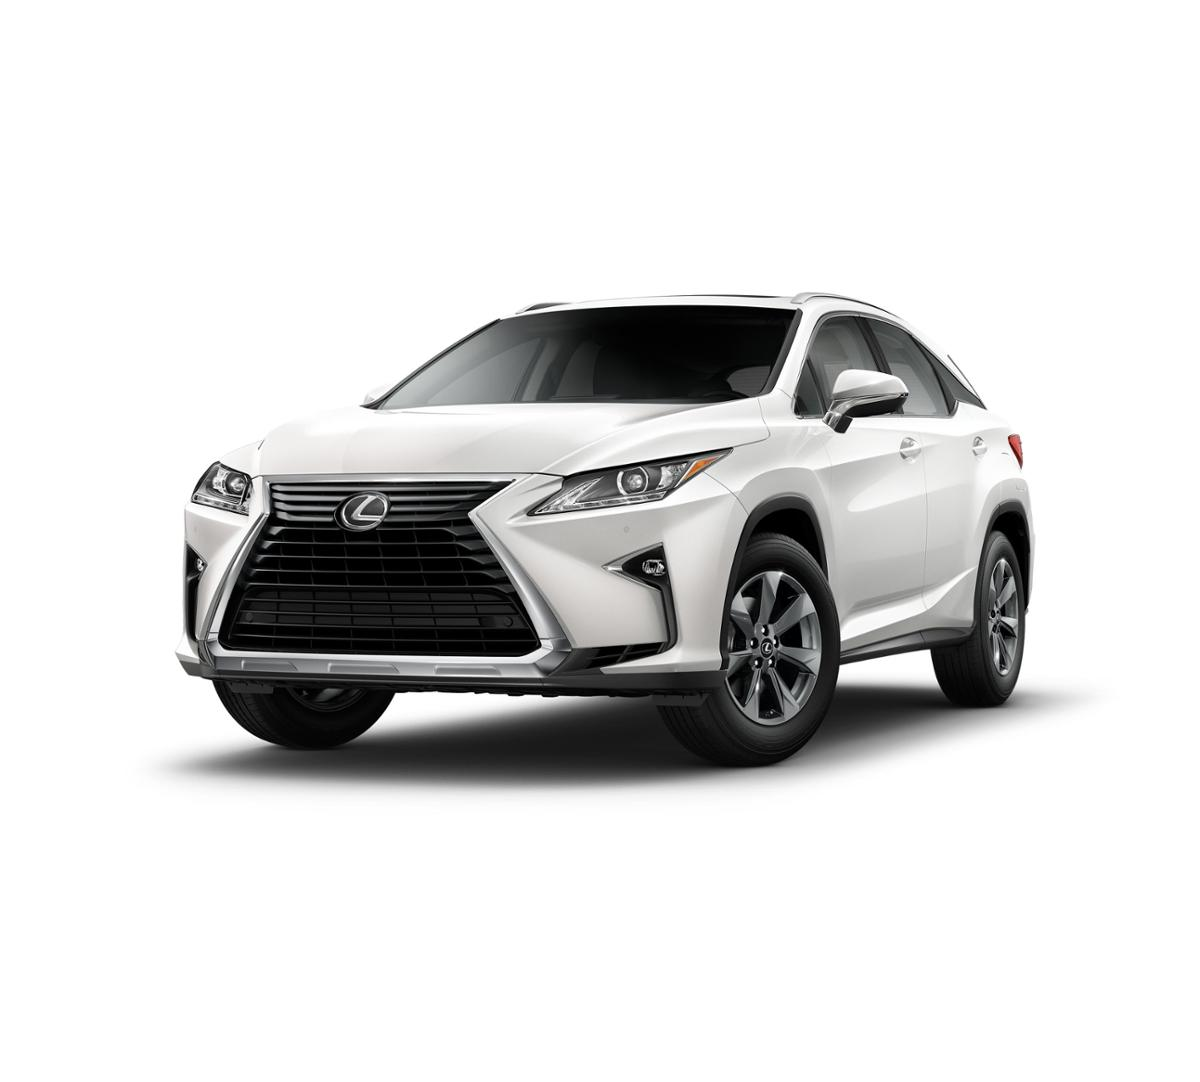 2019 Lexus RX 350 Vehicle Photo in El Monte, CA 91731